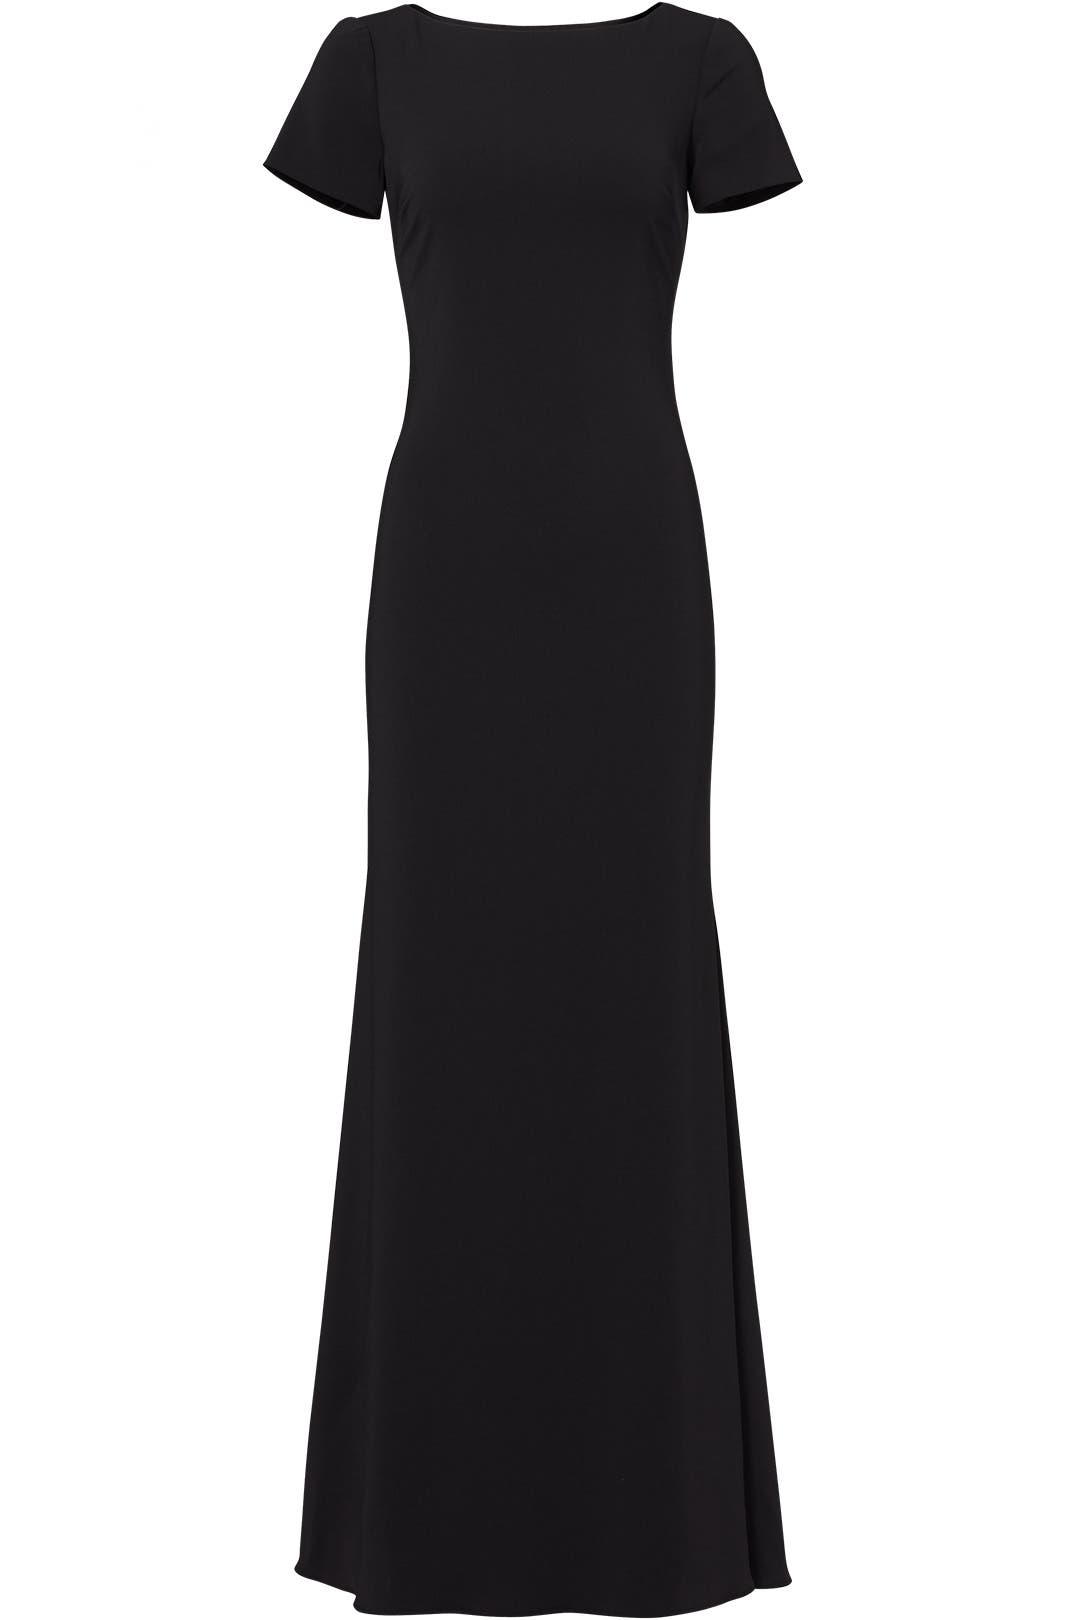 Belle of the Ball Gown by Badgley Mischka for $50 - $70 | Rent the ...